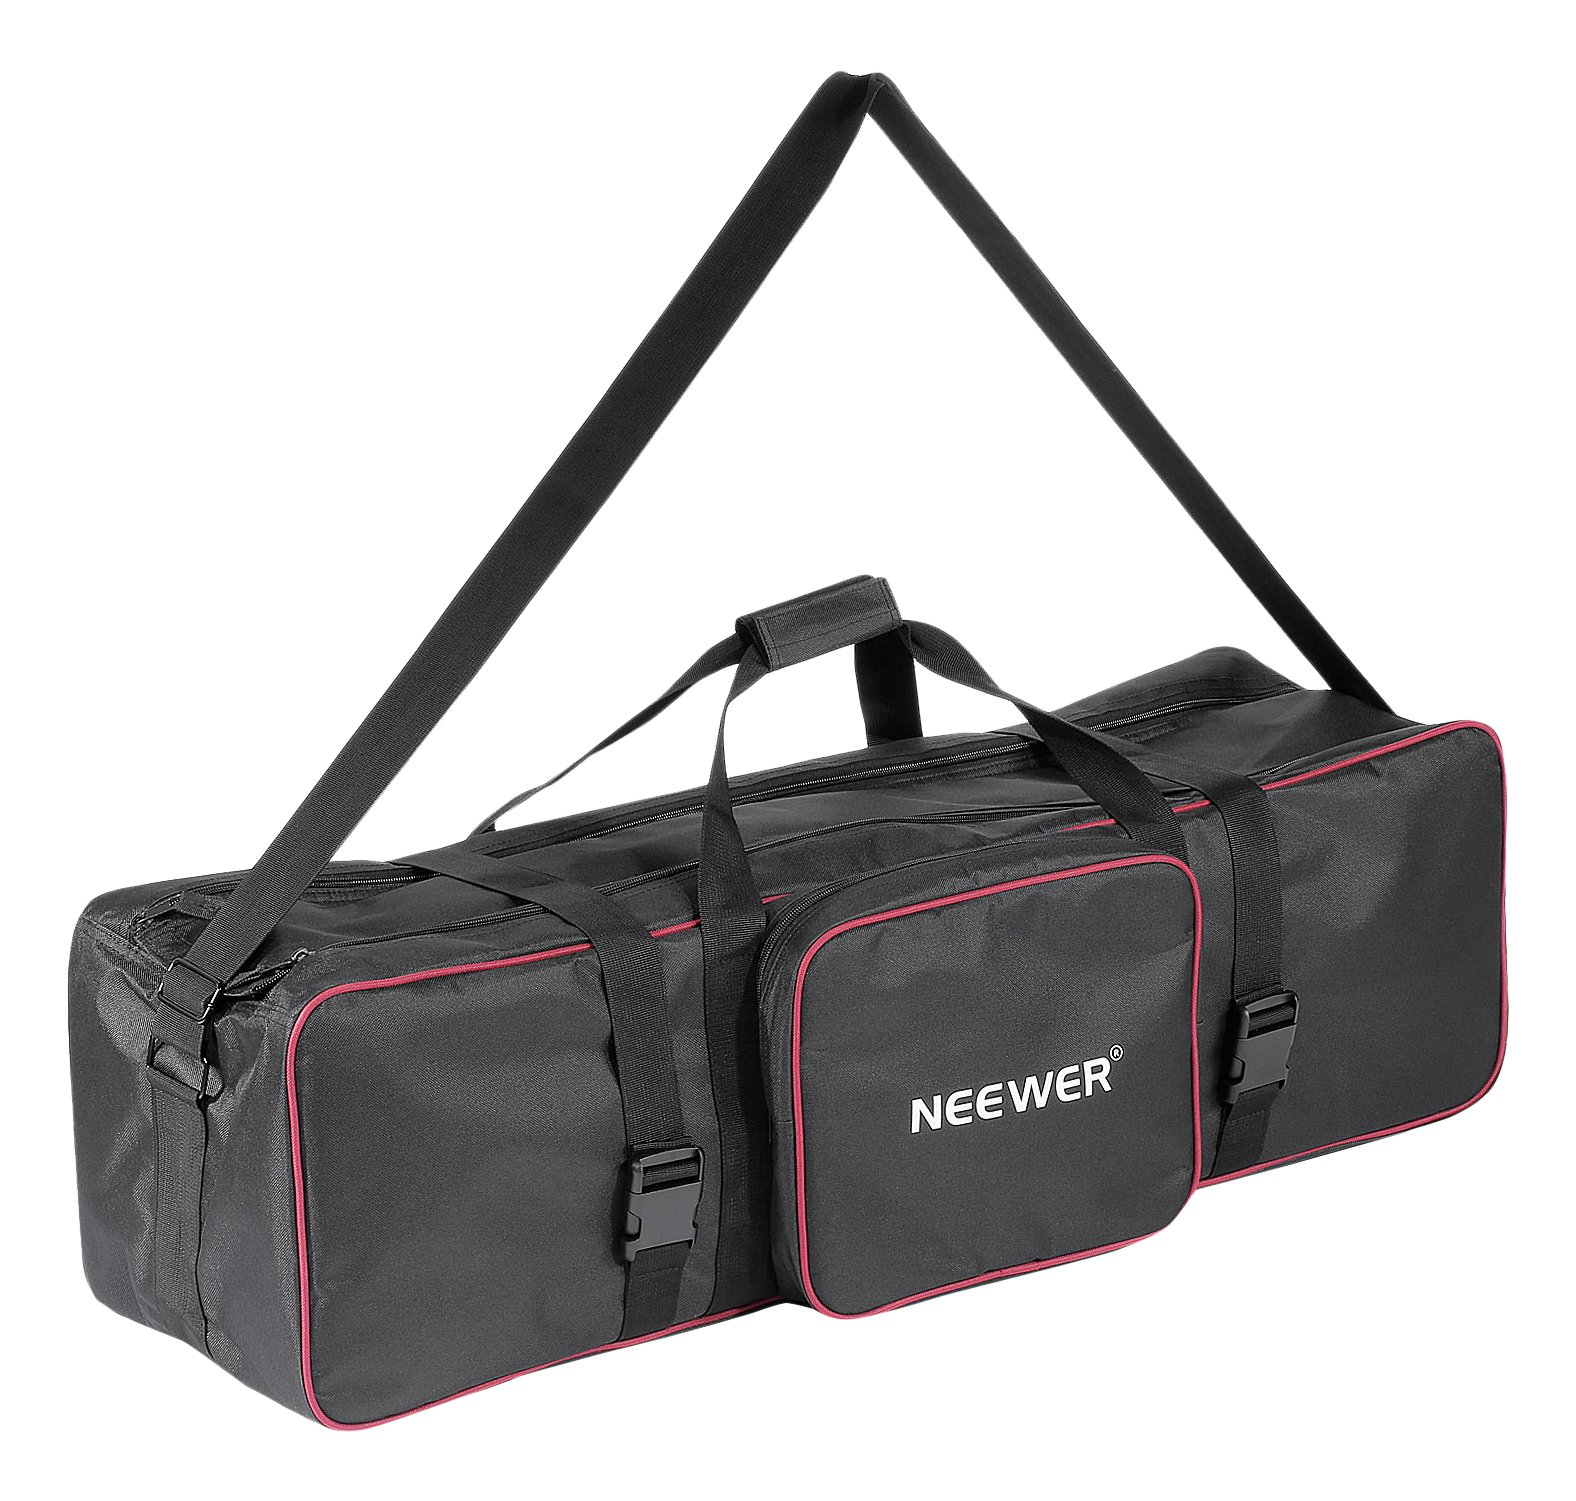 Neewer 30inchx10inchx10inch/77cmx25cmx25cm Photo Video Studio Kit Large Carrying Bag for Light Stand Umbrella by Neewer